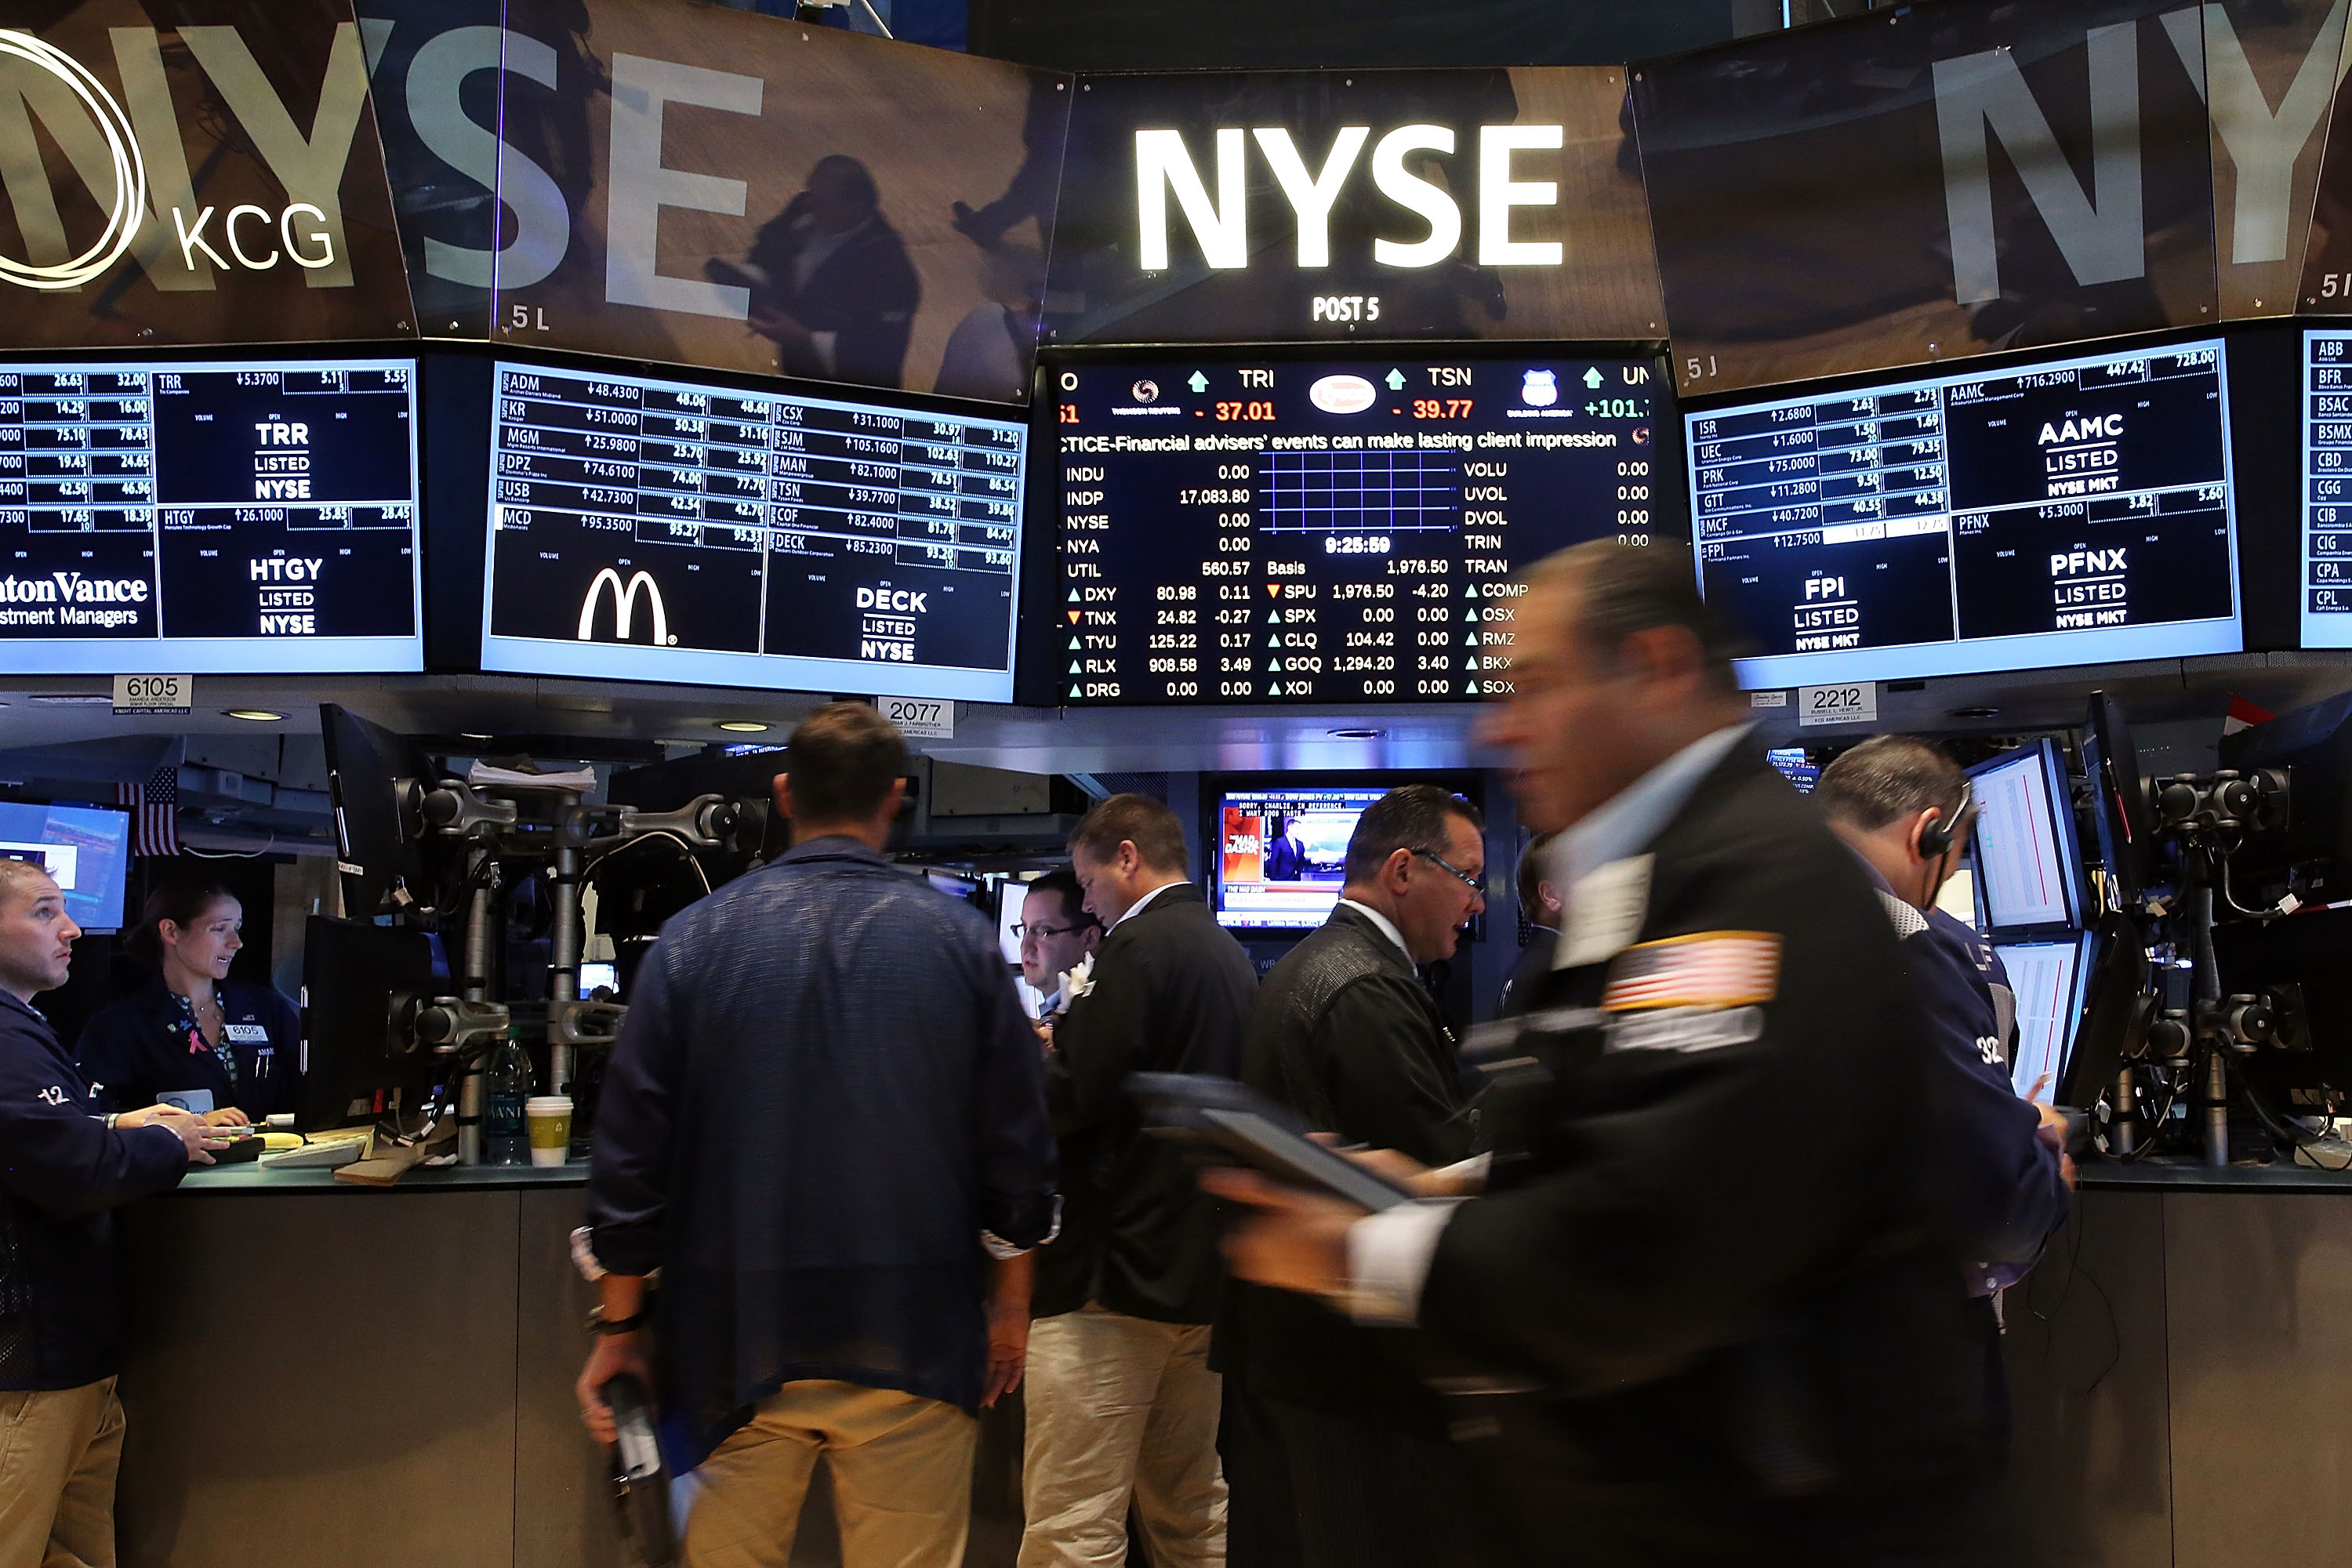 Traders work on the floor of the New York Stock Exchange (NYSE) on July 25, 2014 in New York City.